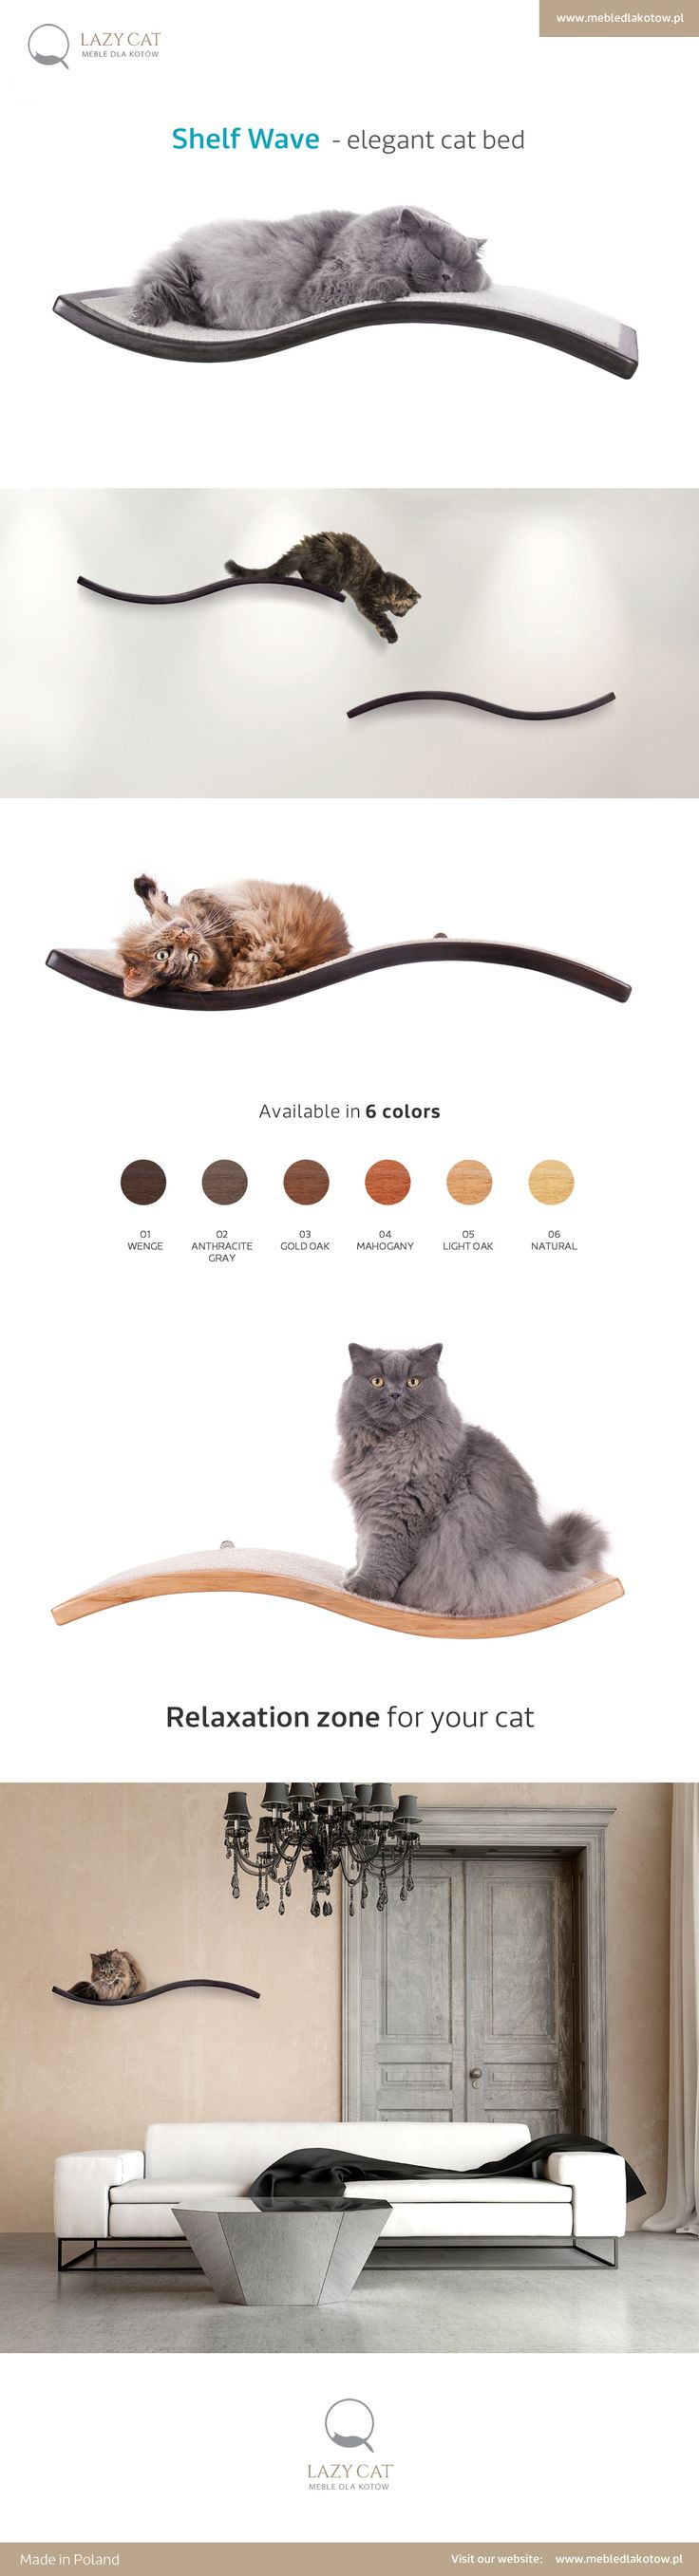 Shelf Wave - elegant cat bed